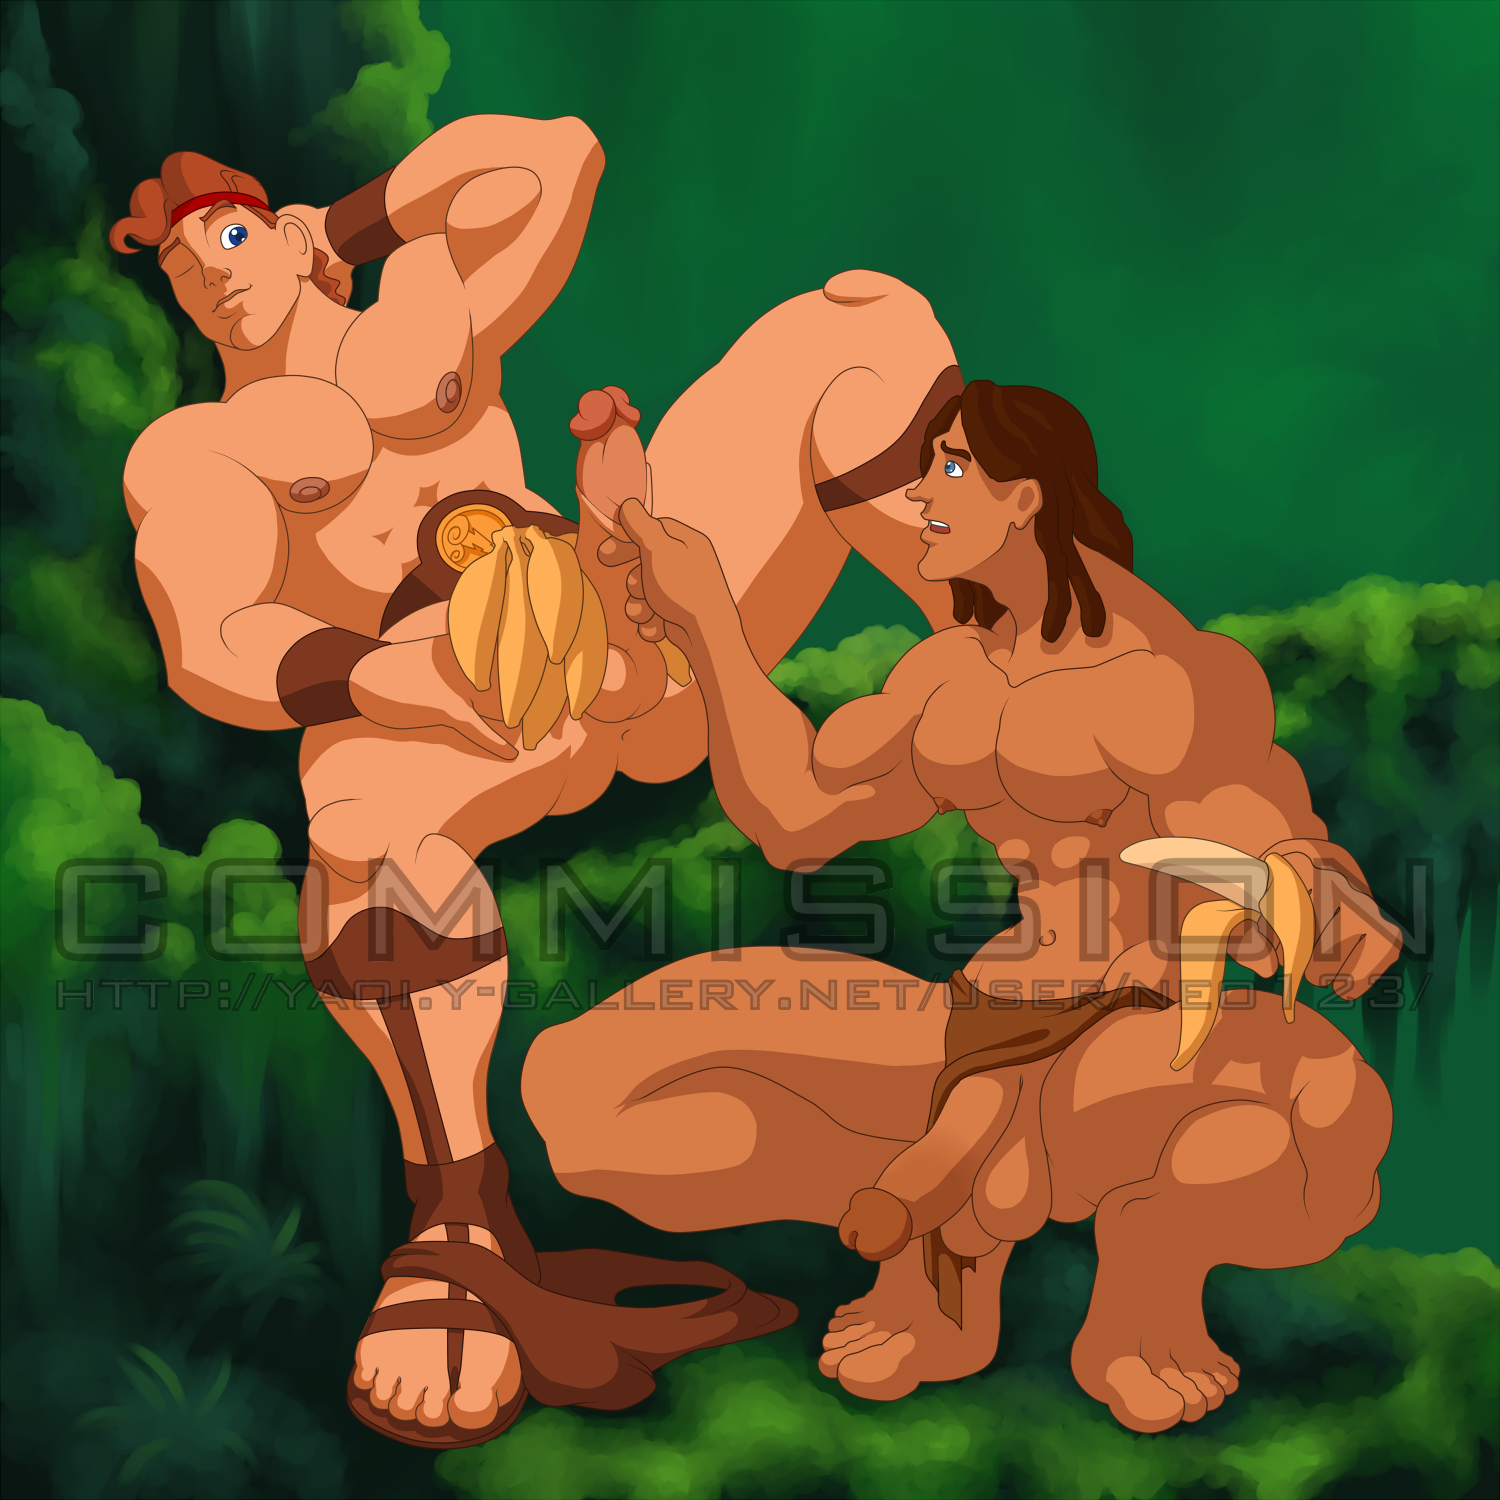 hercules   cartoons porn pictures online at world hentai